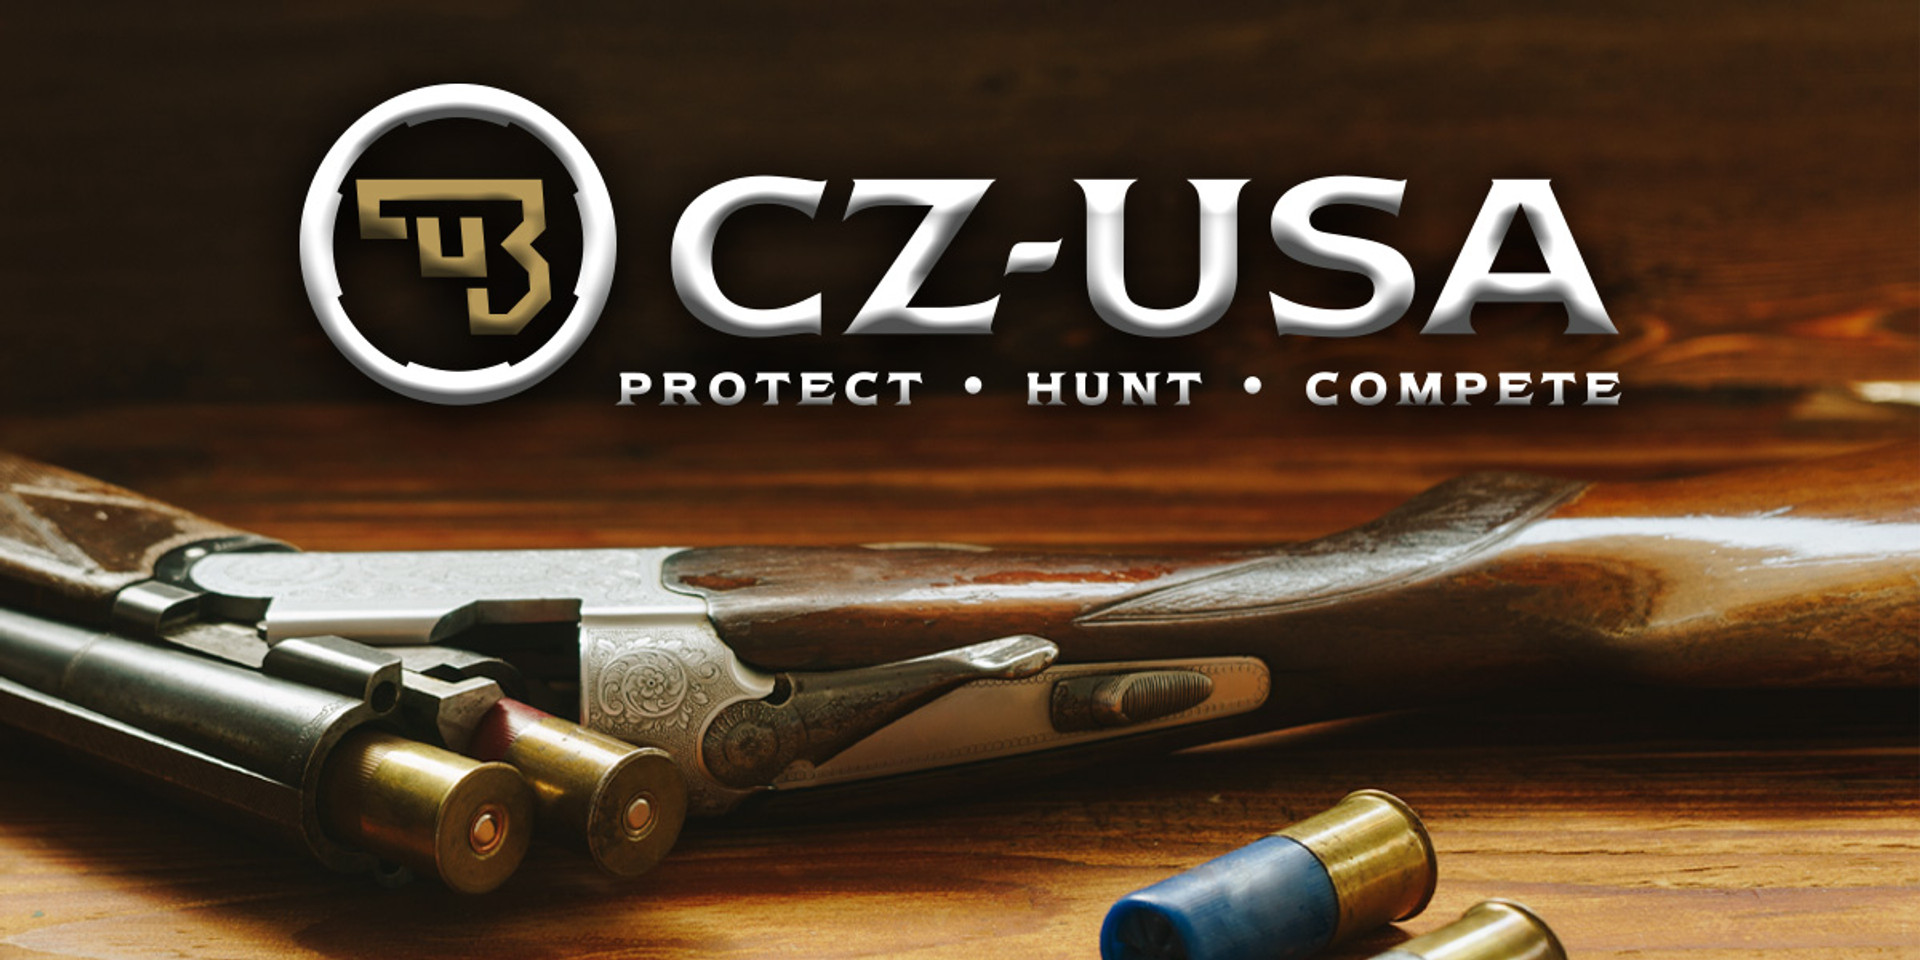 CZ-USA - Protect, Hunt, Compete